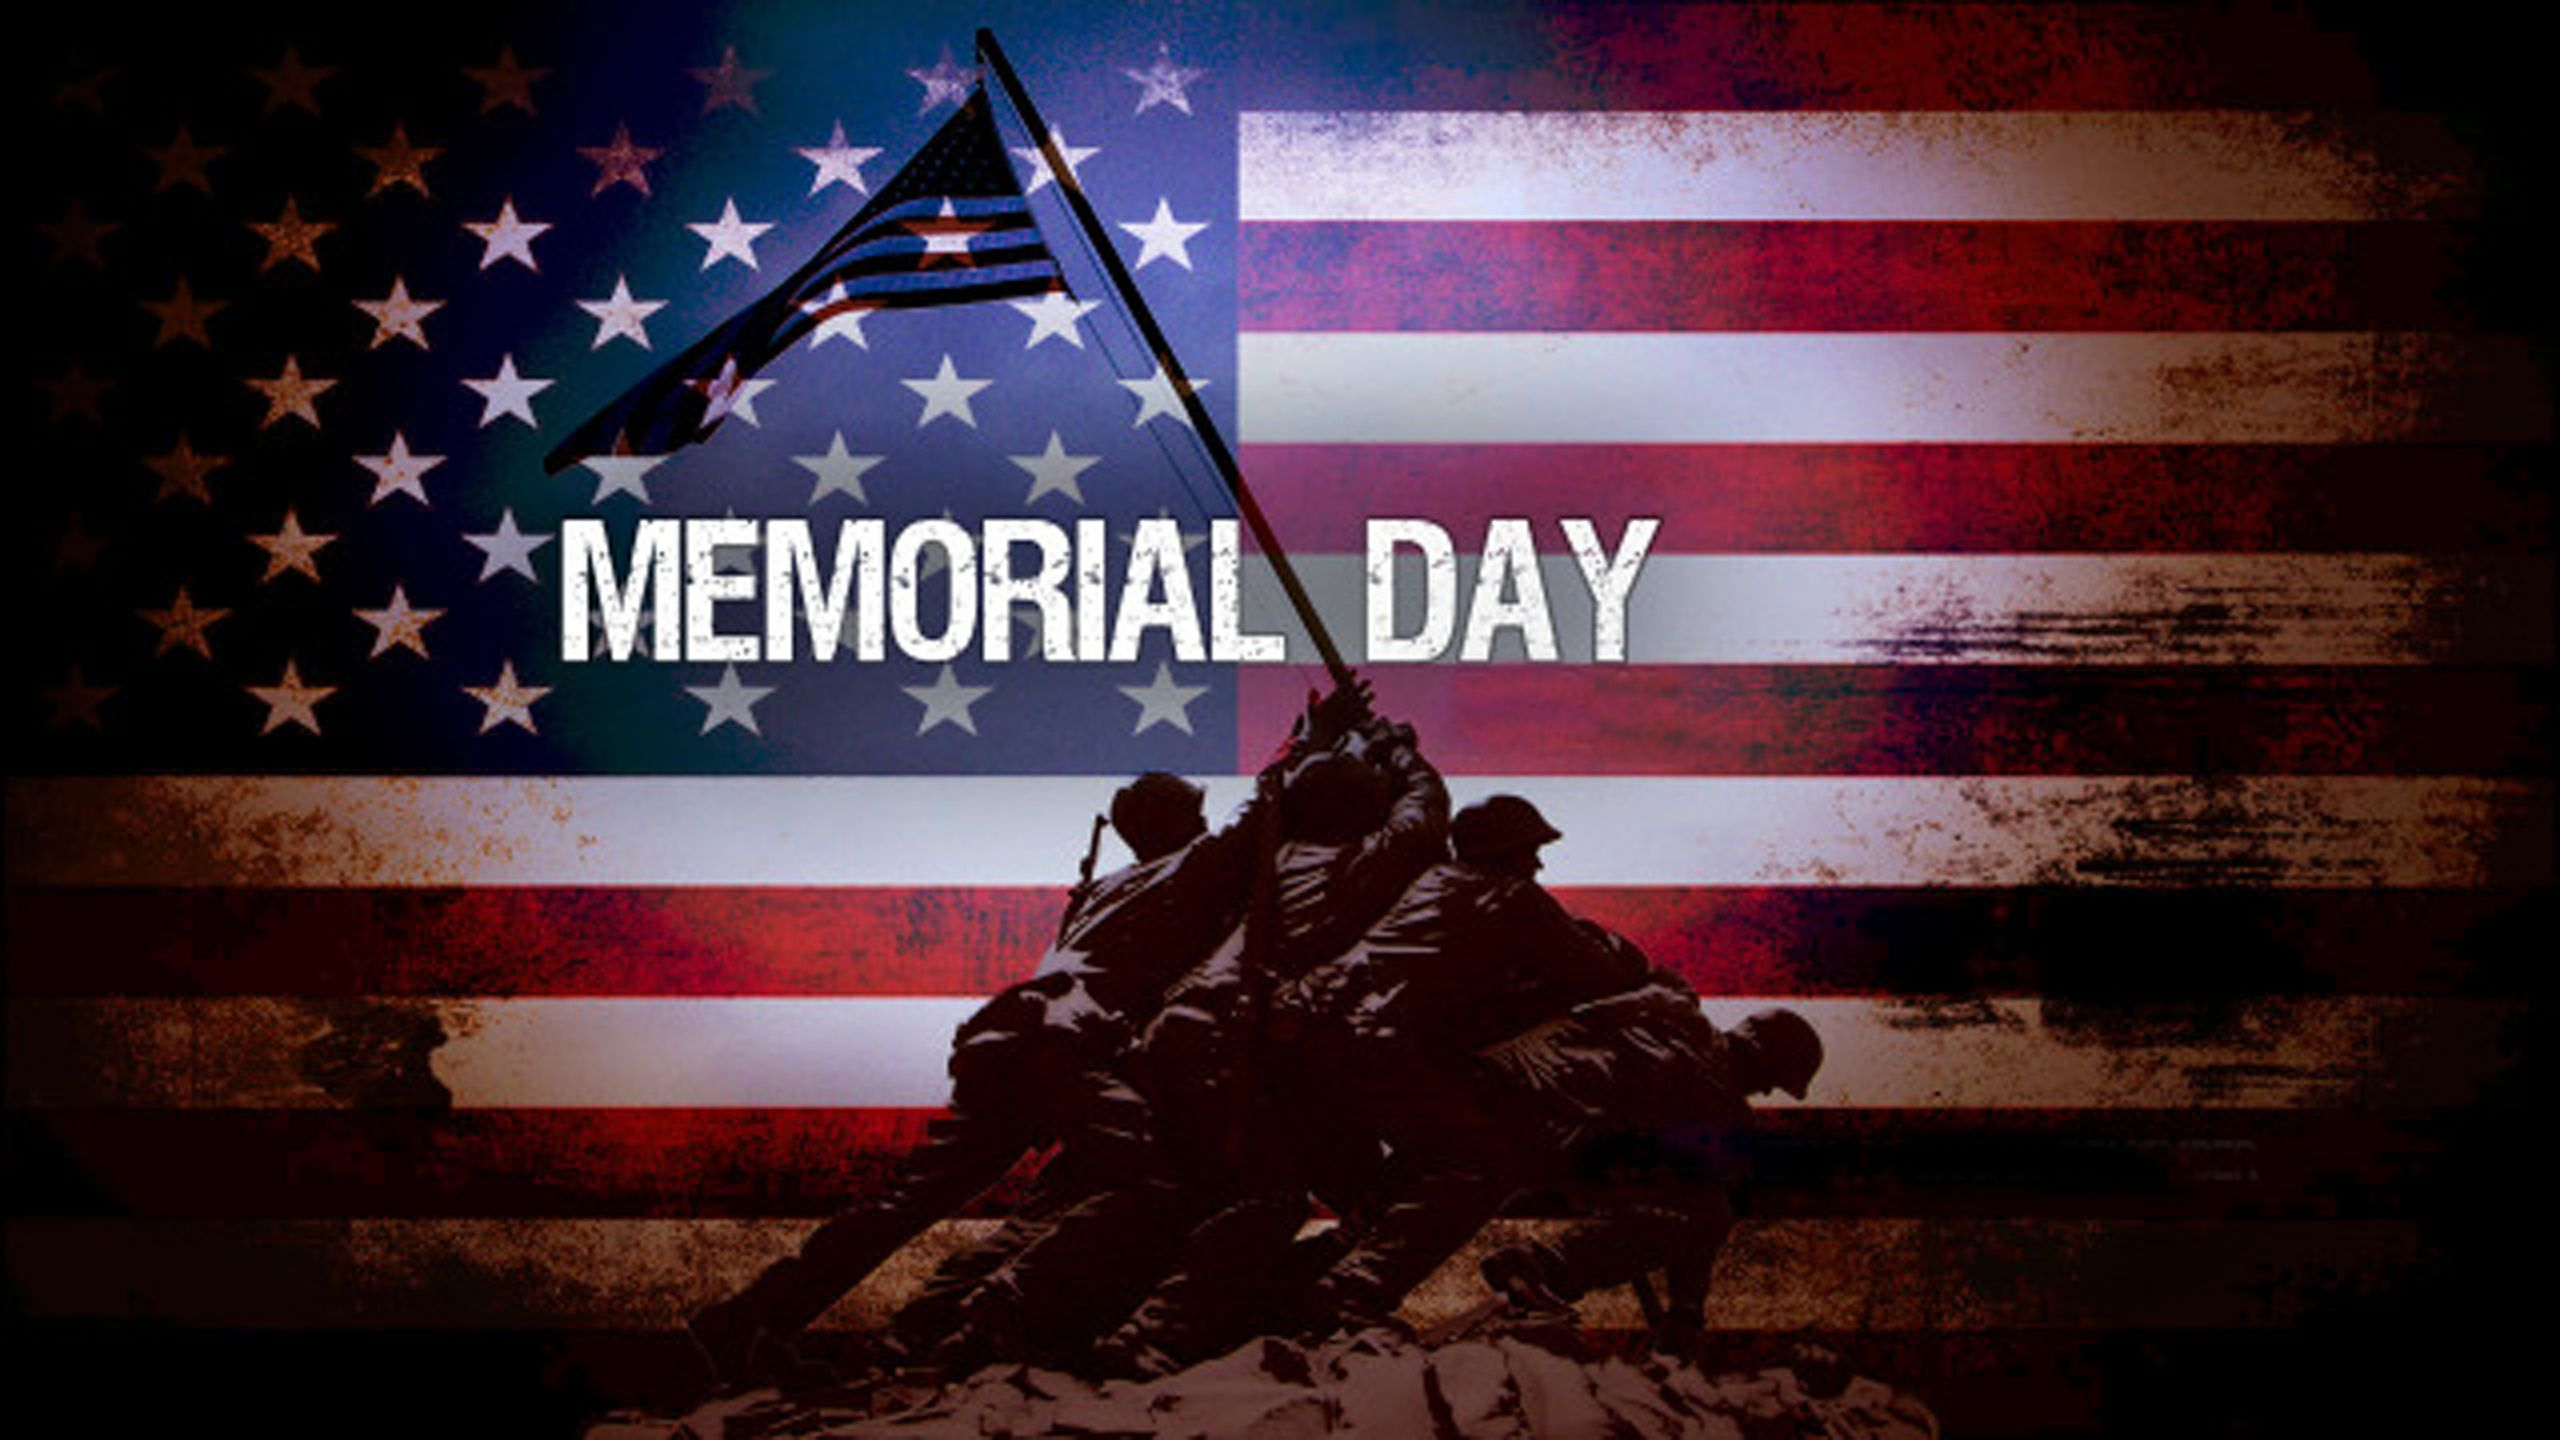 Happy Memorial Day from Teniseal/Parking Striping Corp.!